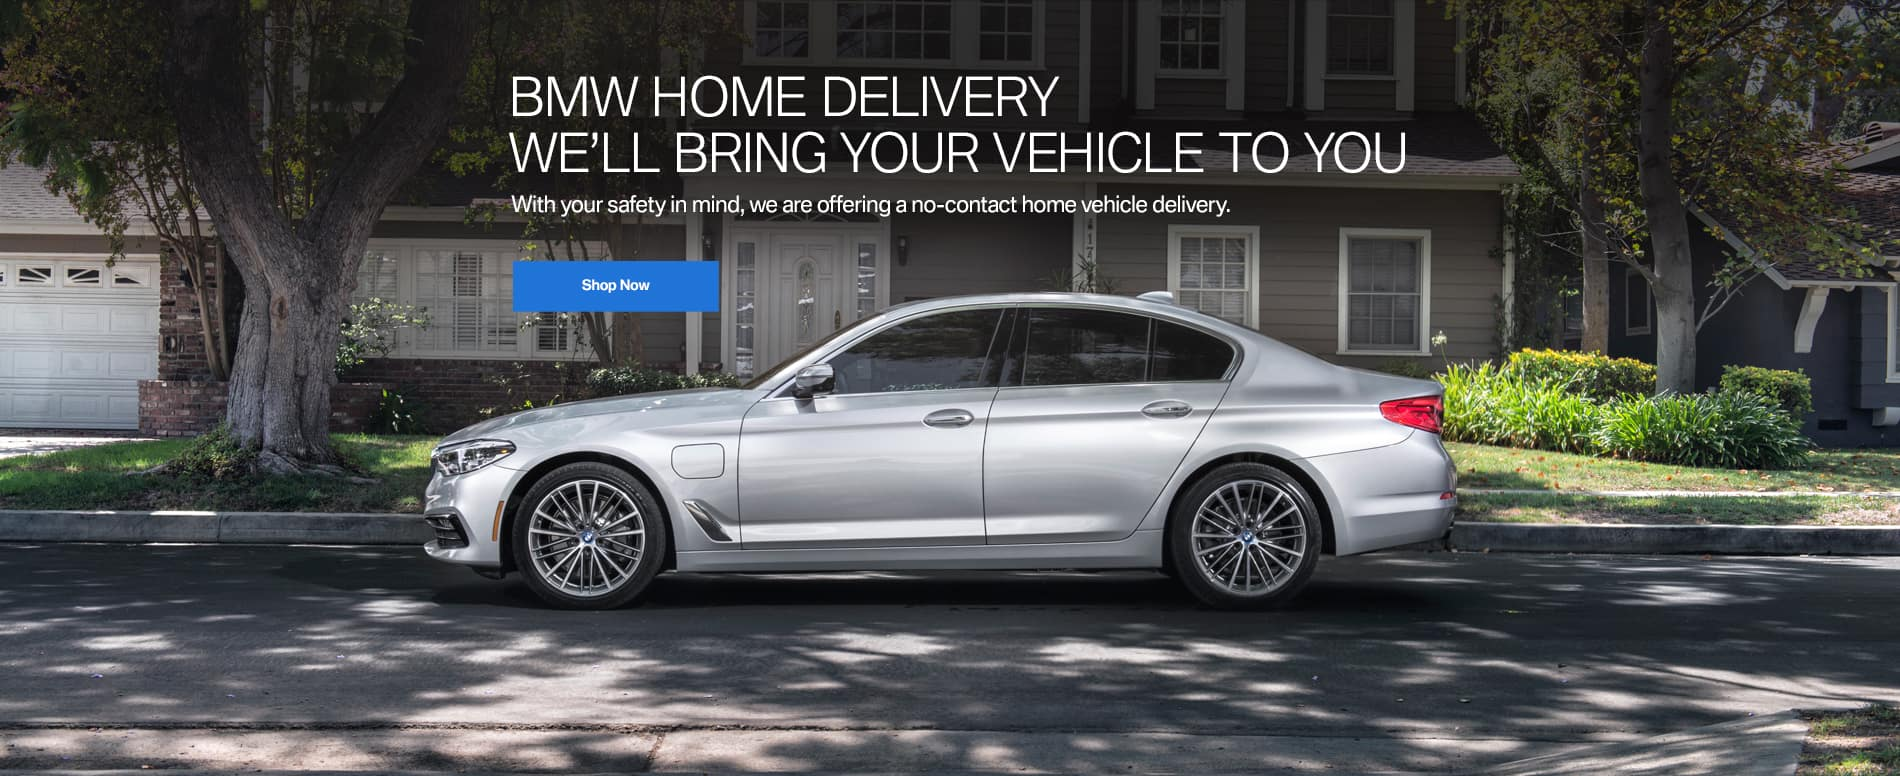 we'll bring your vehicle to you